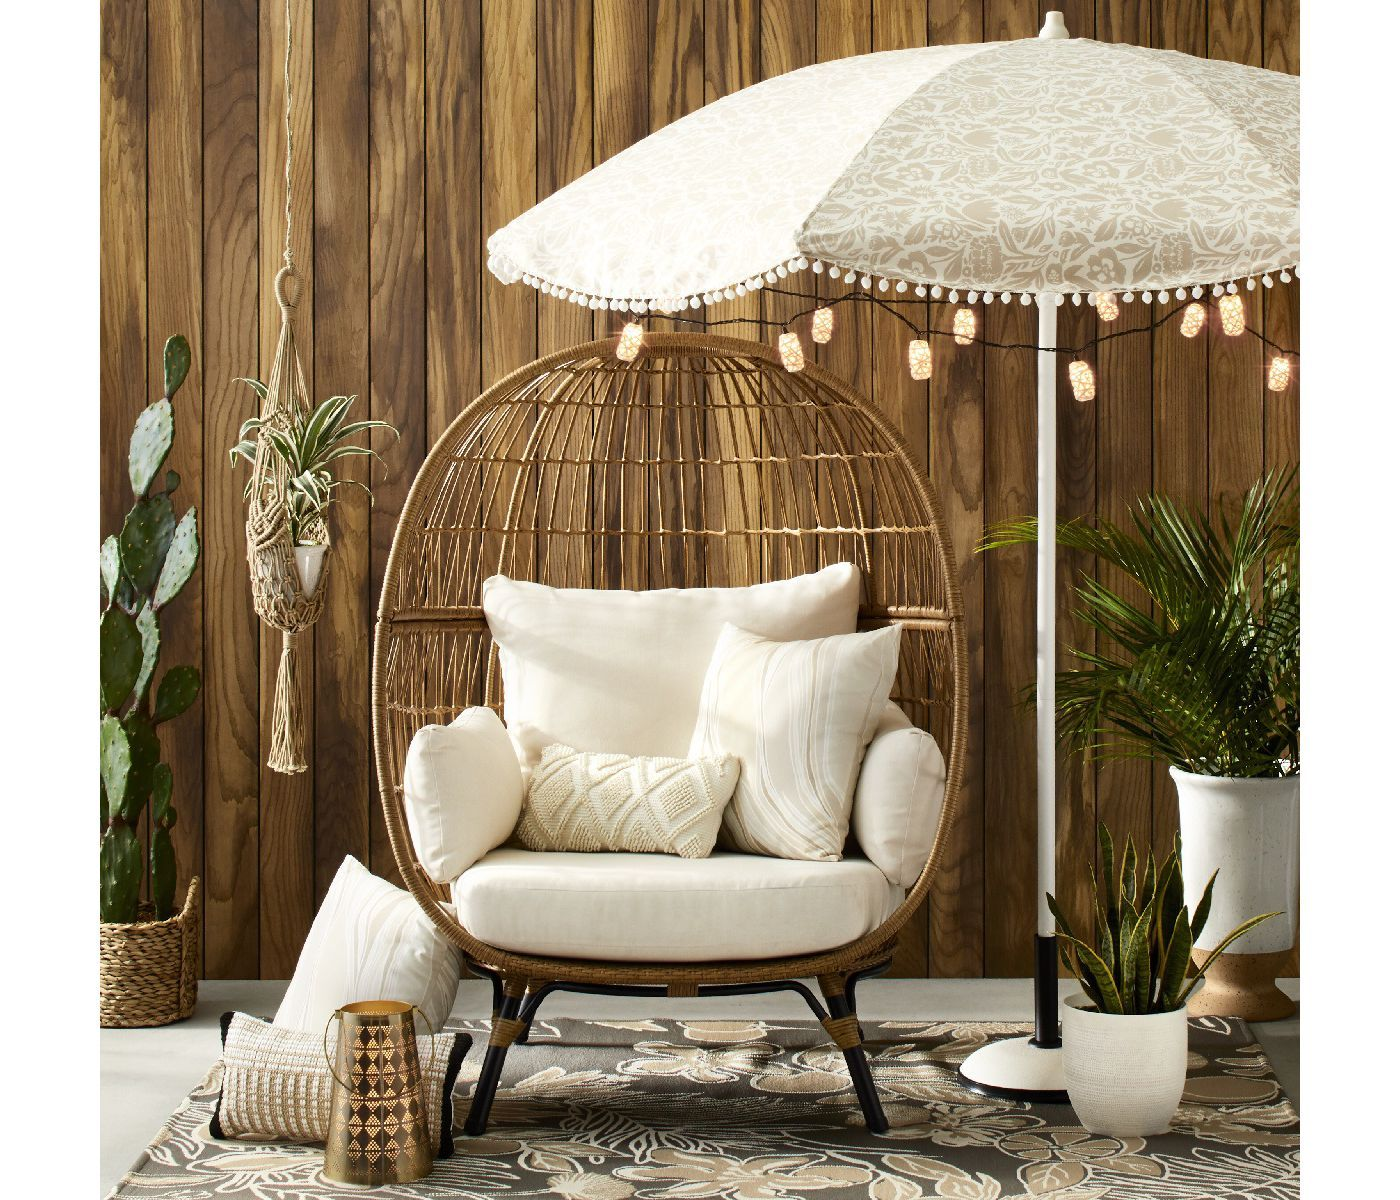 Target Outdoor Patio Egg Chair